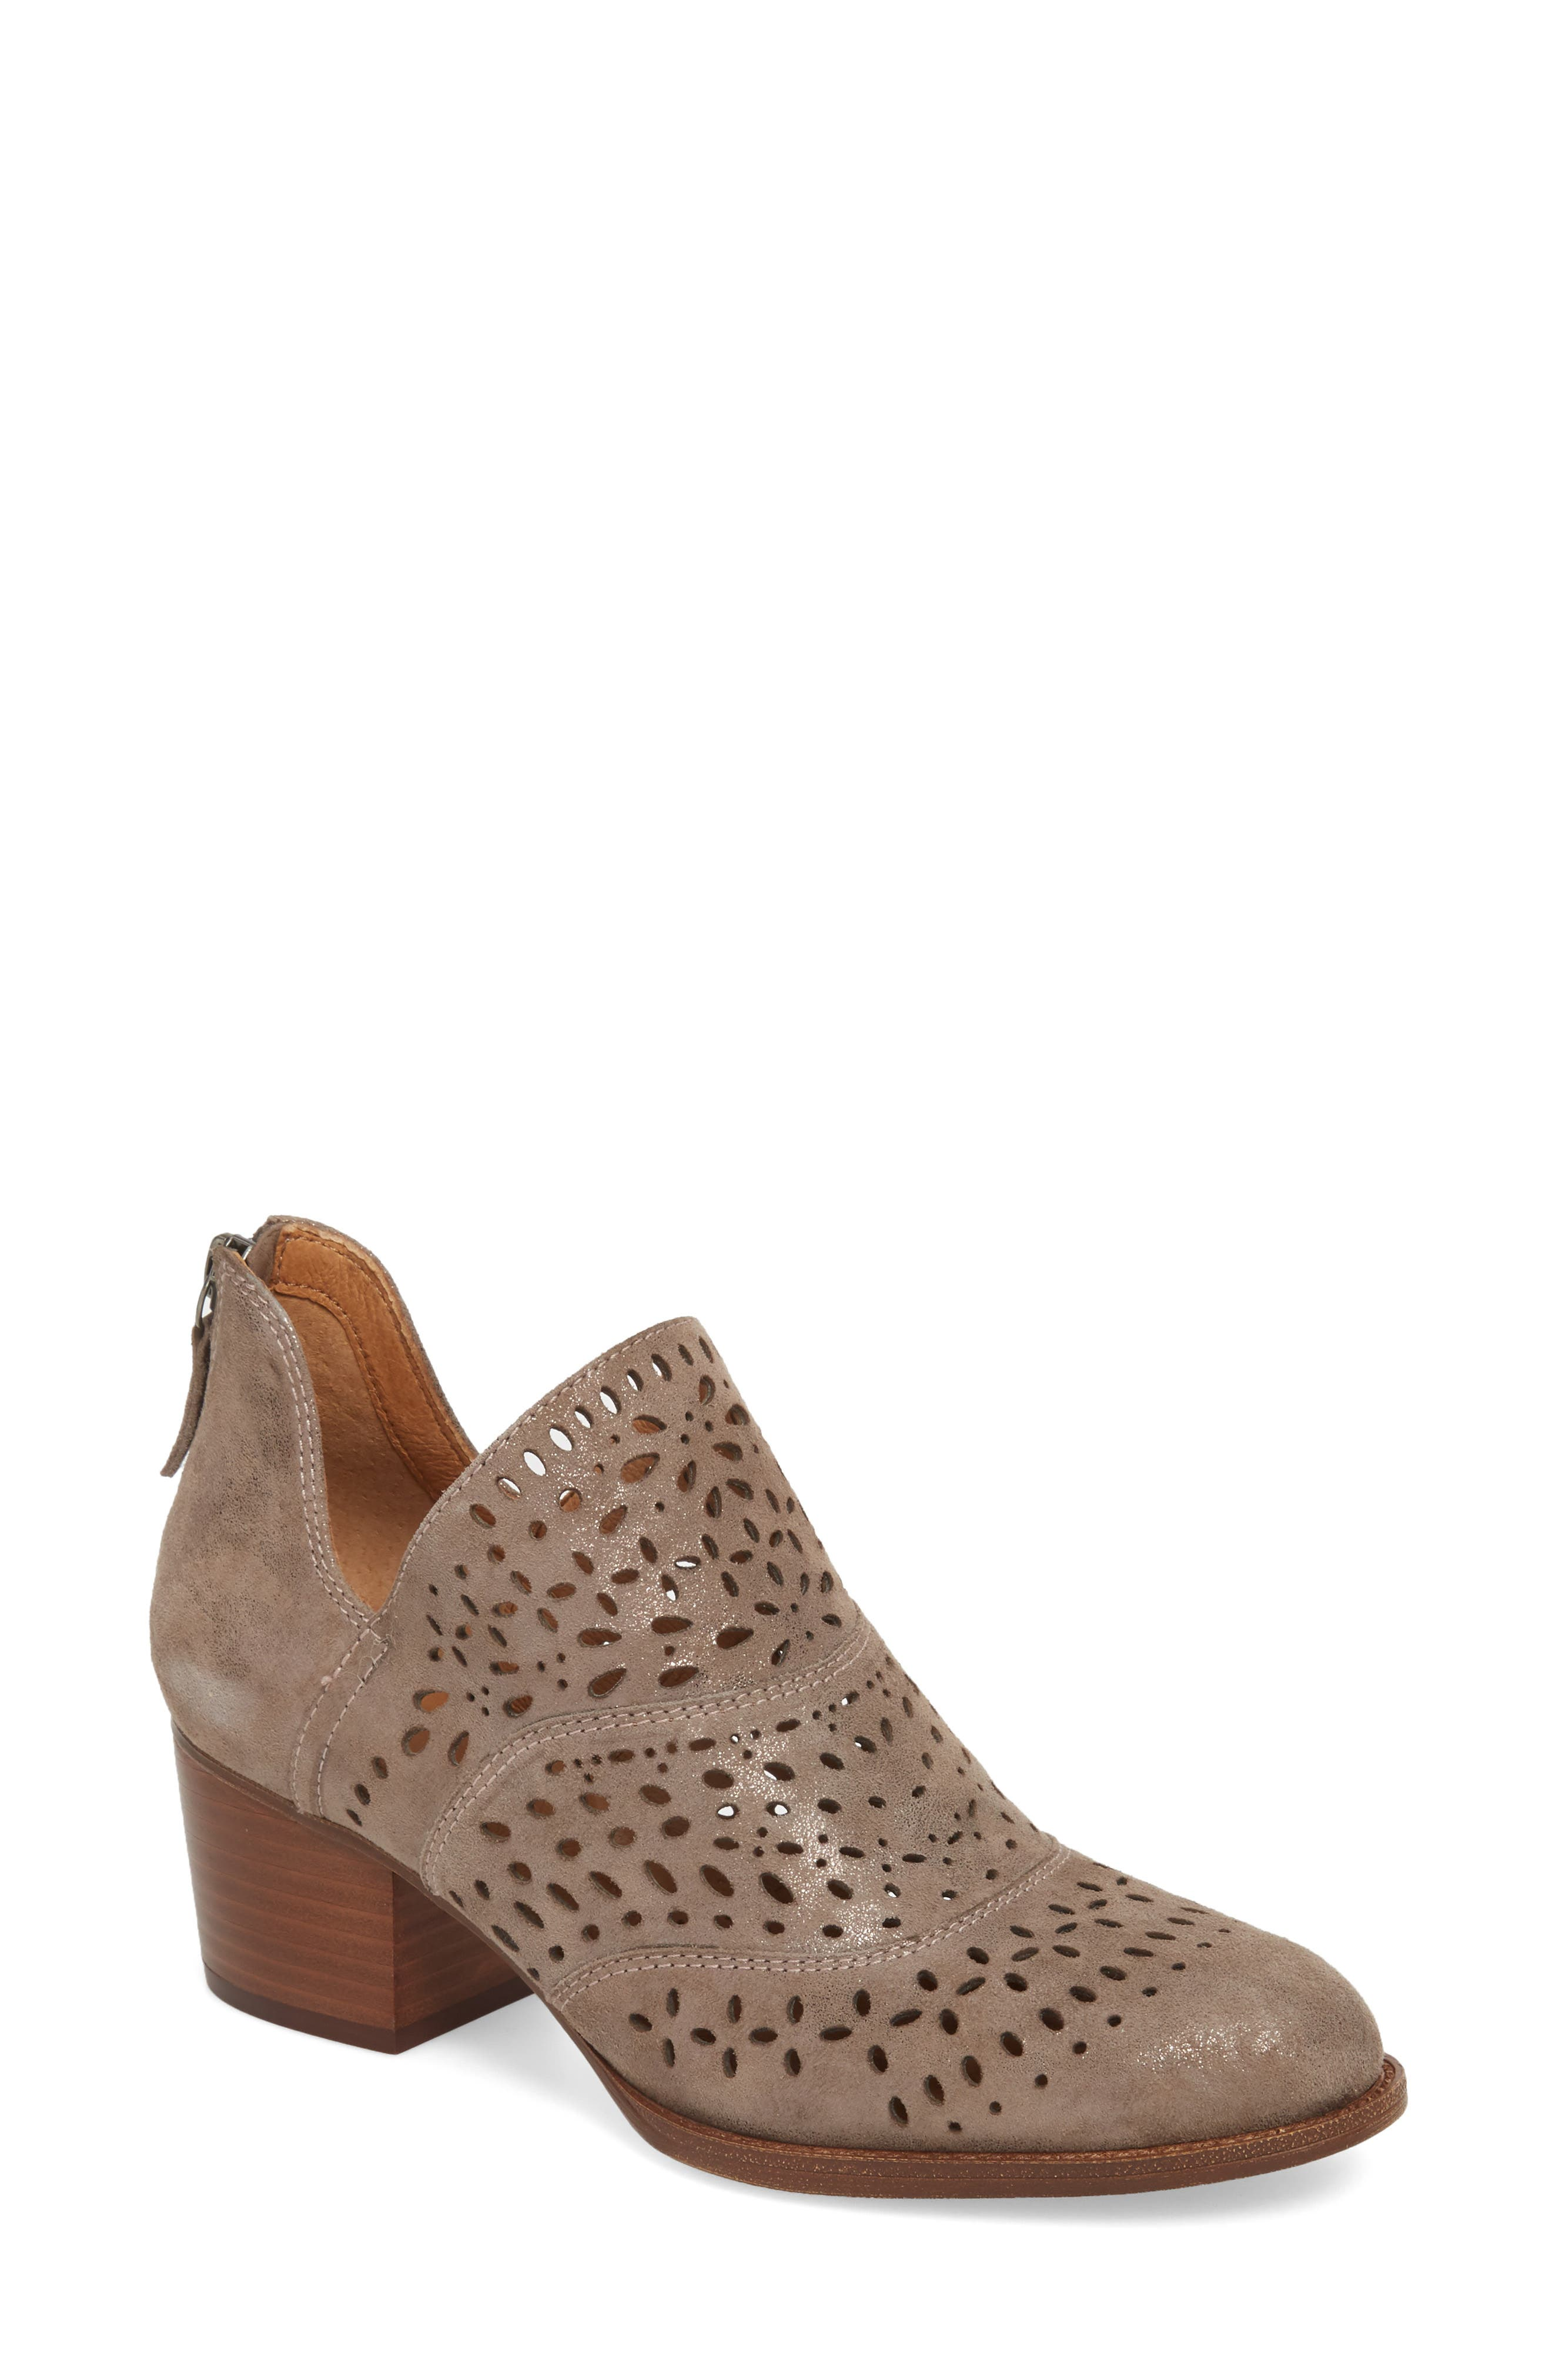 SÖFFT Wyoming Bootie, Main, color, SMOKE LEATHER